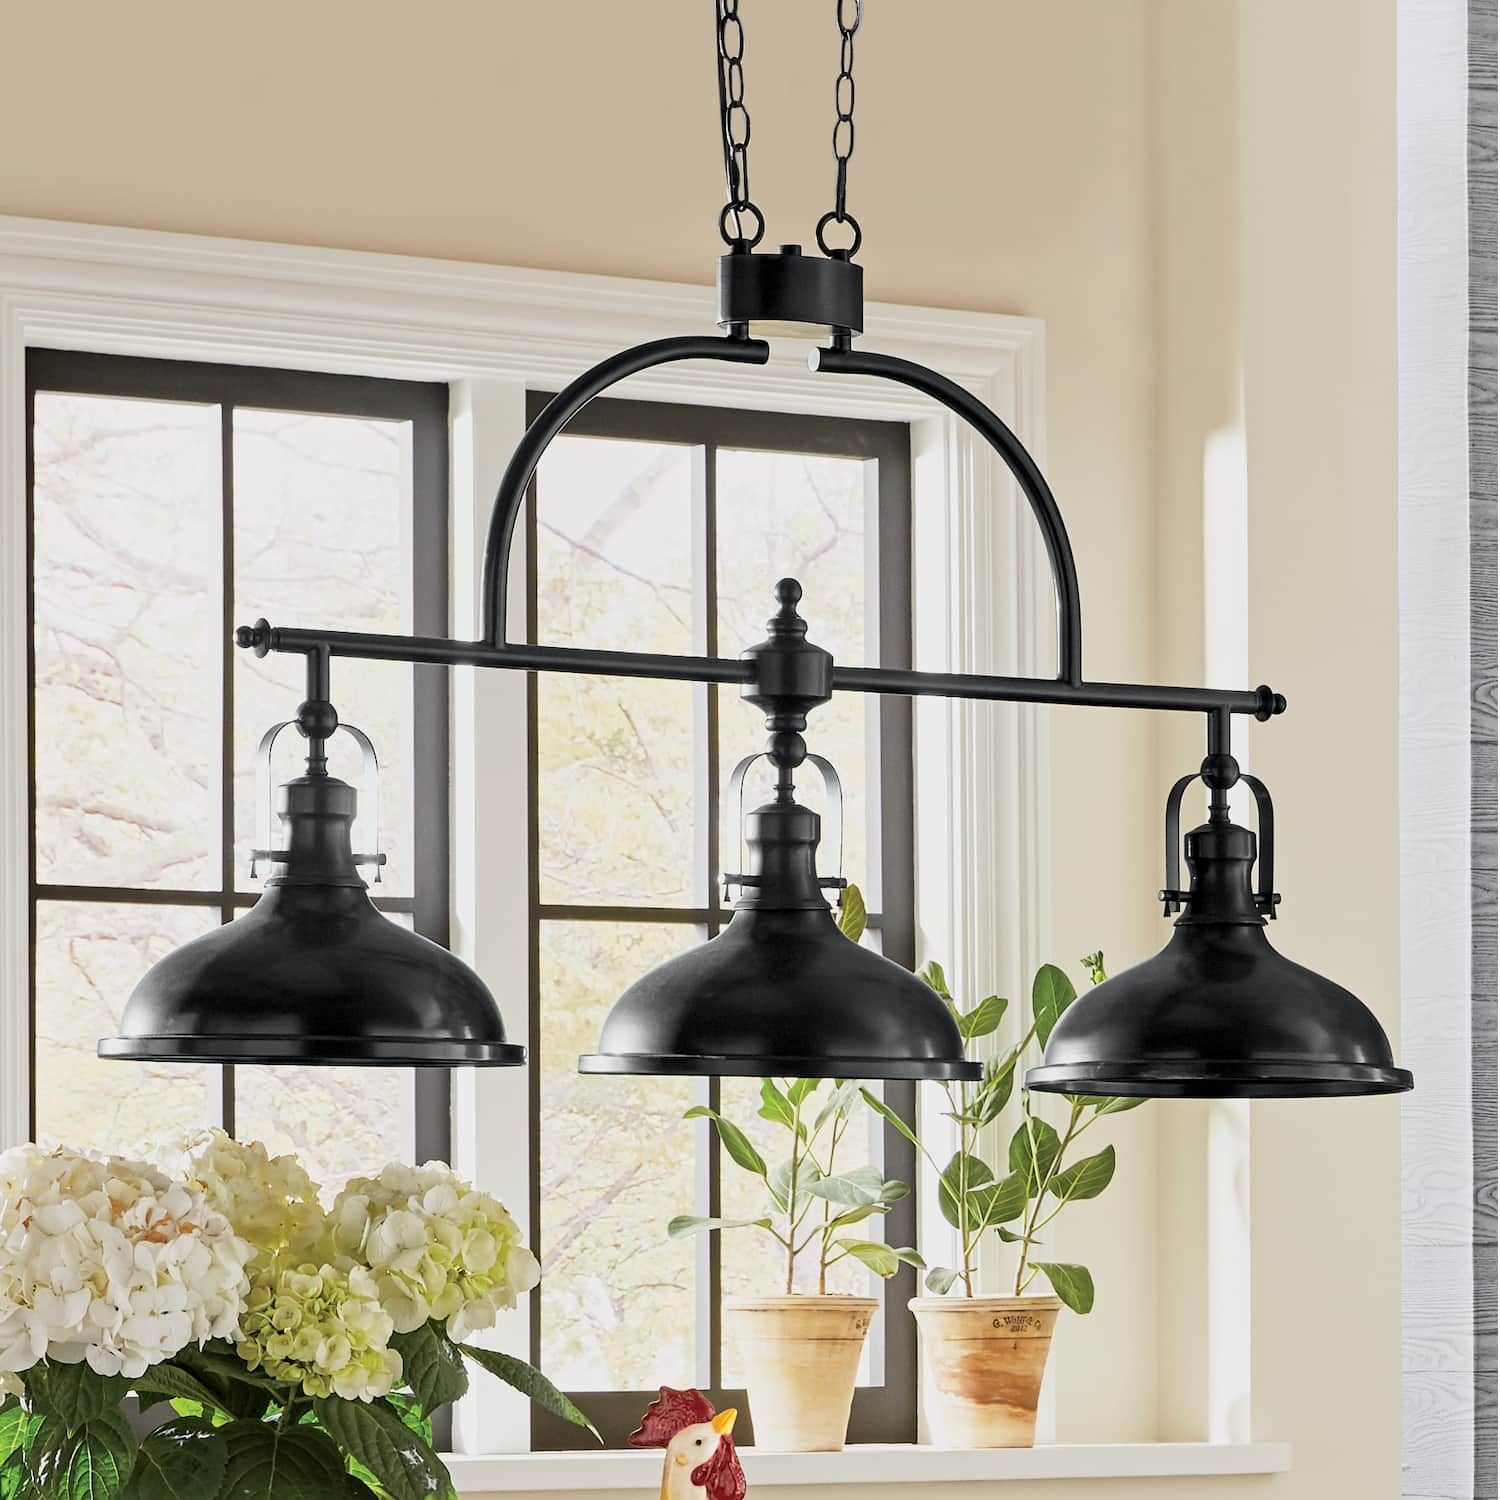 Niles Hanging Lamp | Country Door | Remodeling In 2019 in Martinique 3-Light Kitchen Island Dome Pendants (Image 24 of 30)